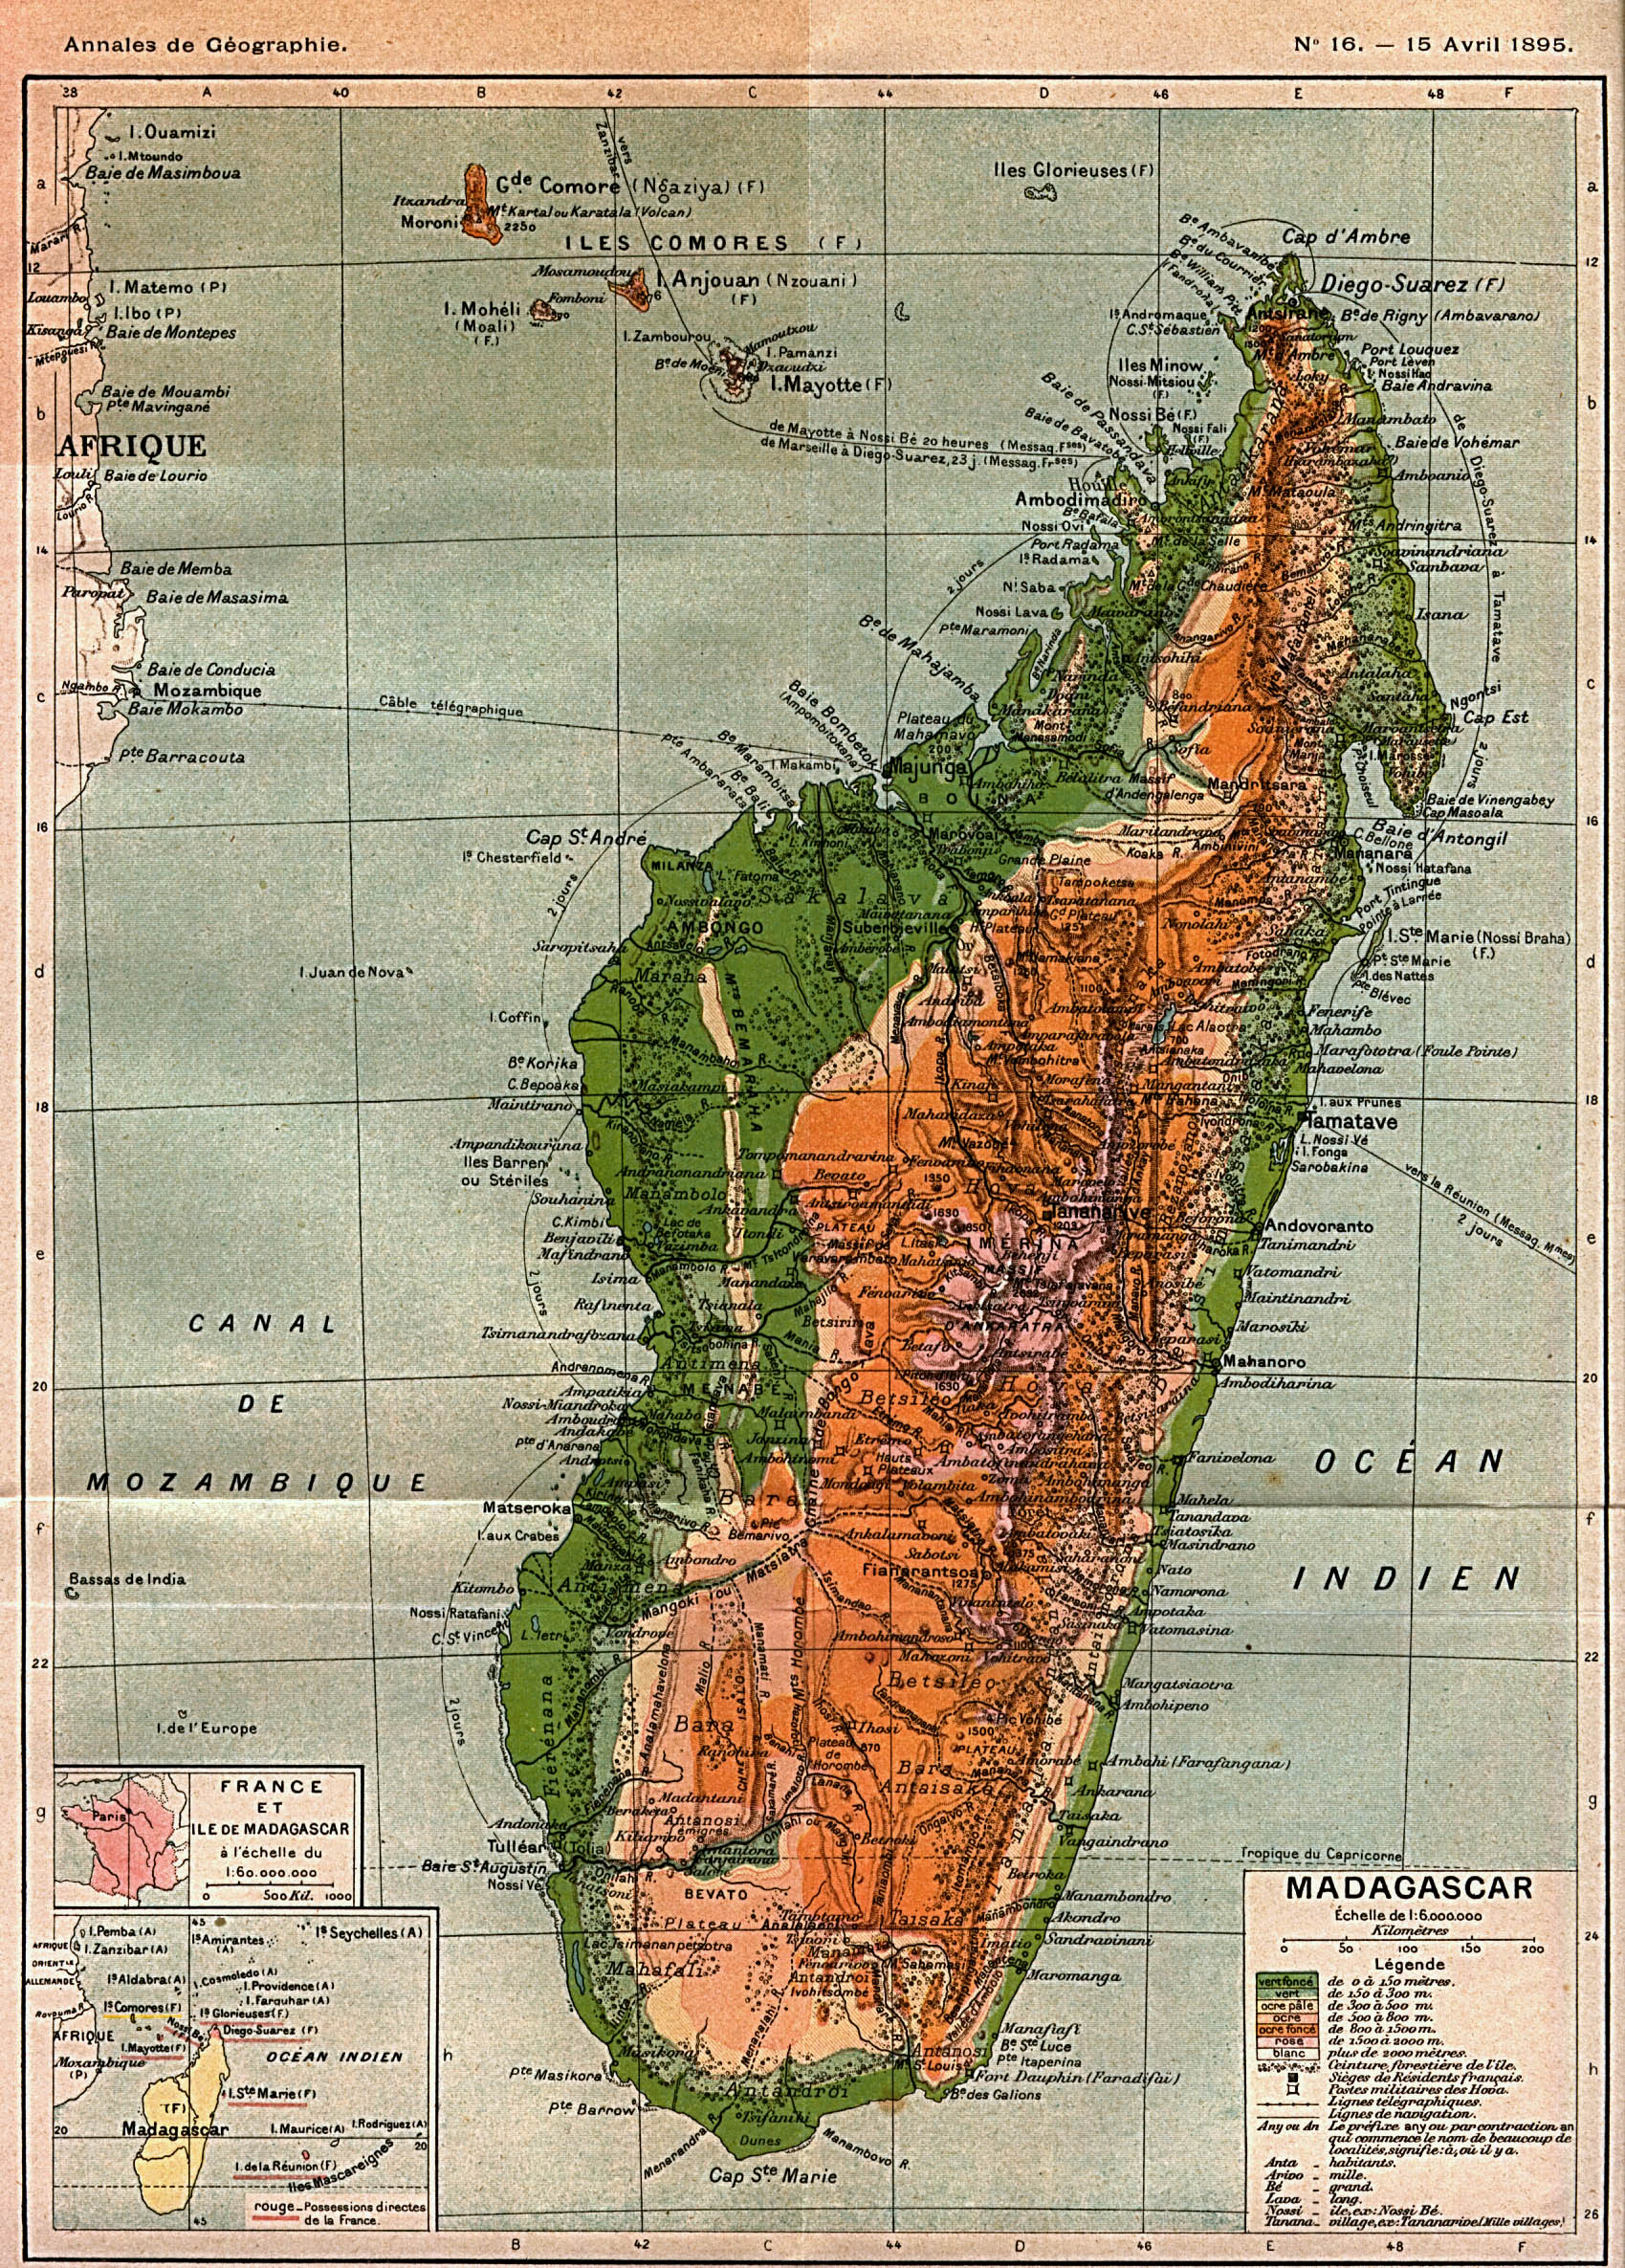 1895 Map - Moroni & Comoros Islands